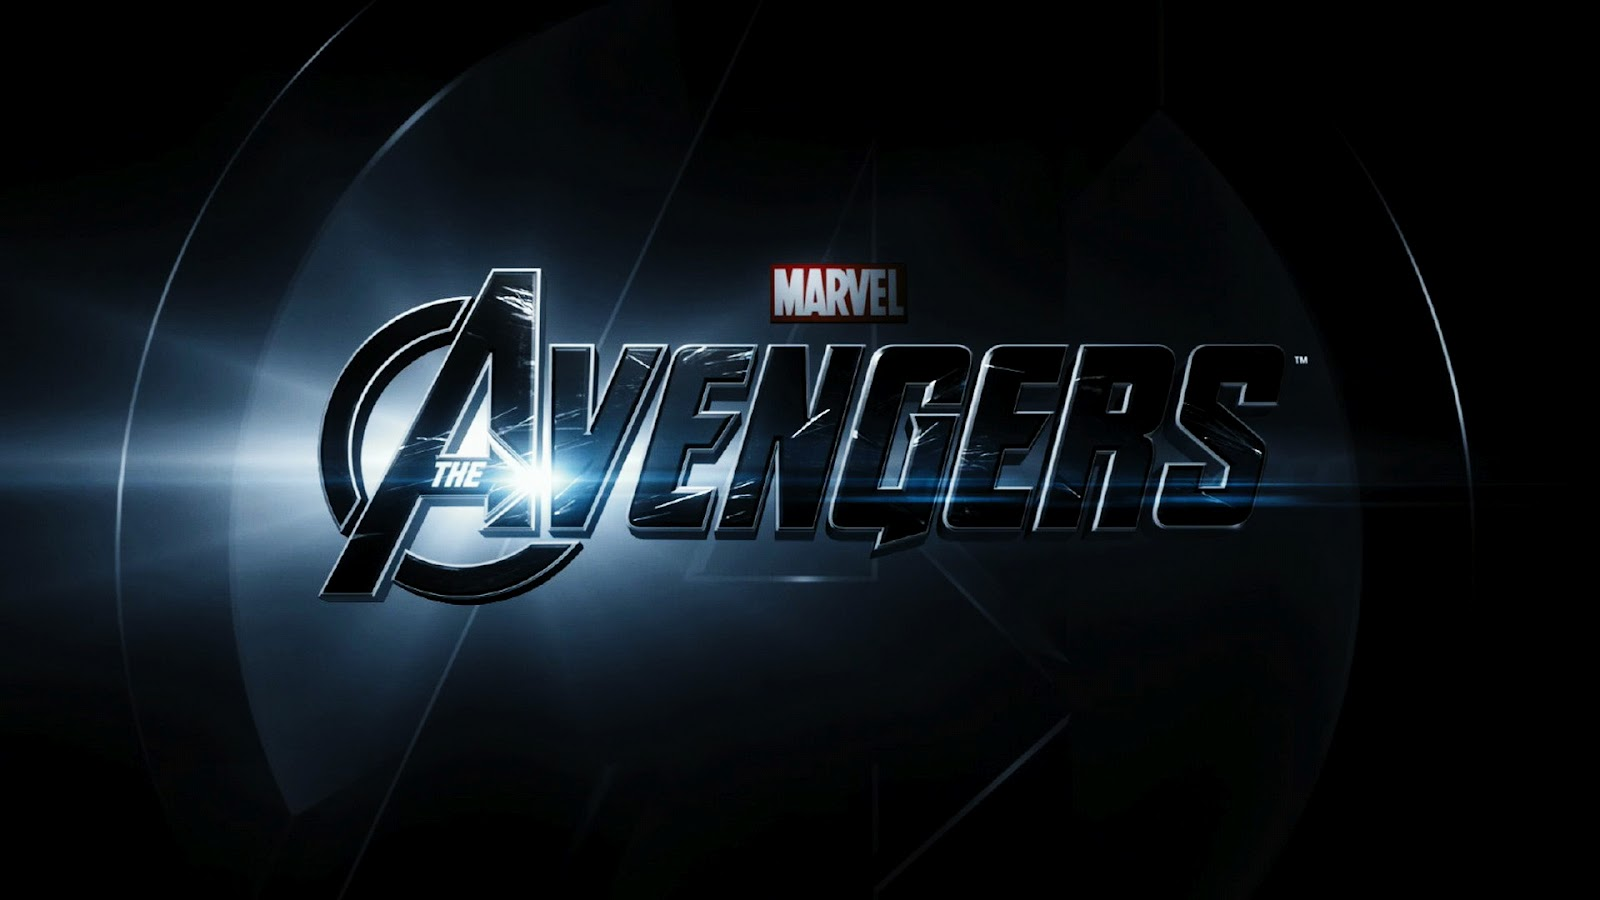 Wallpapers   HD Desktop Wallpapers Online The Avengers 1600x900